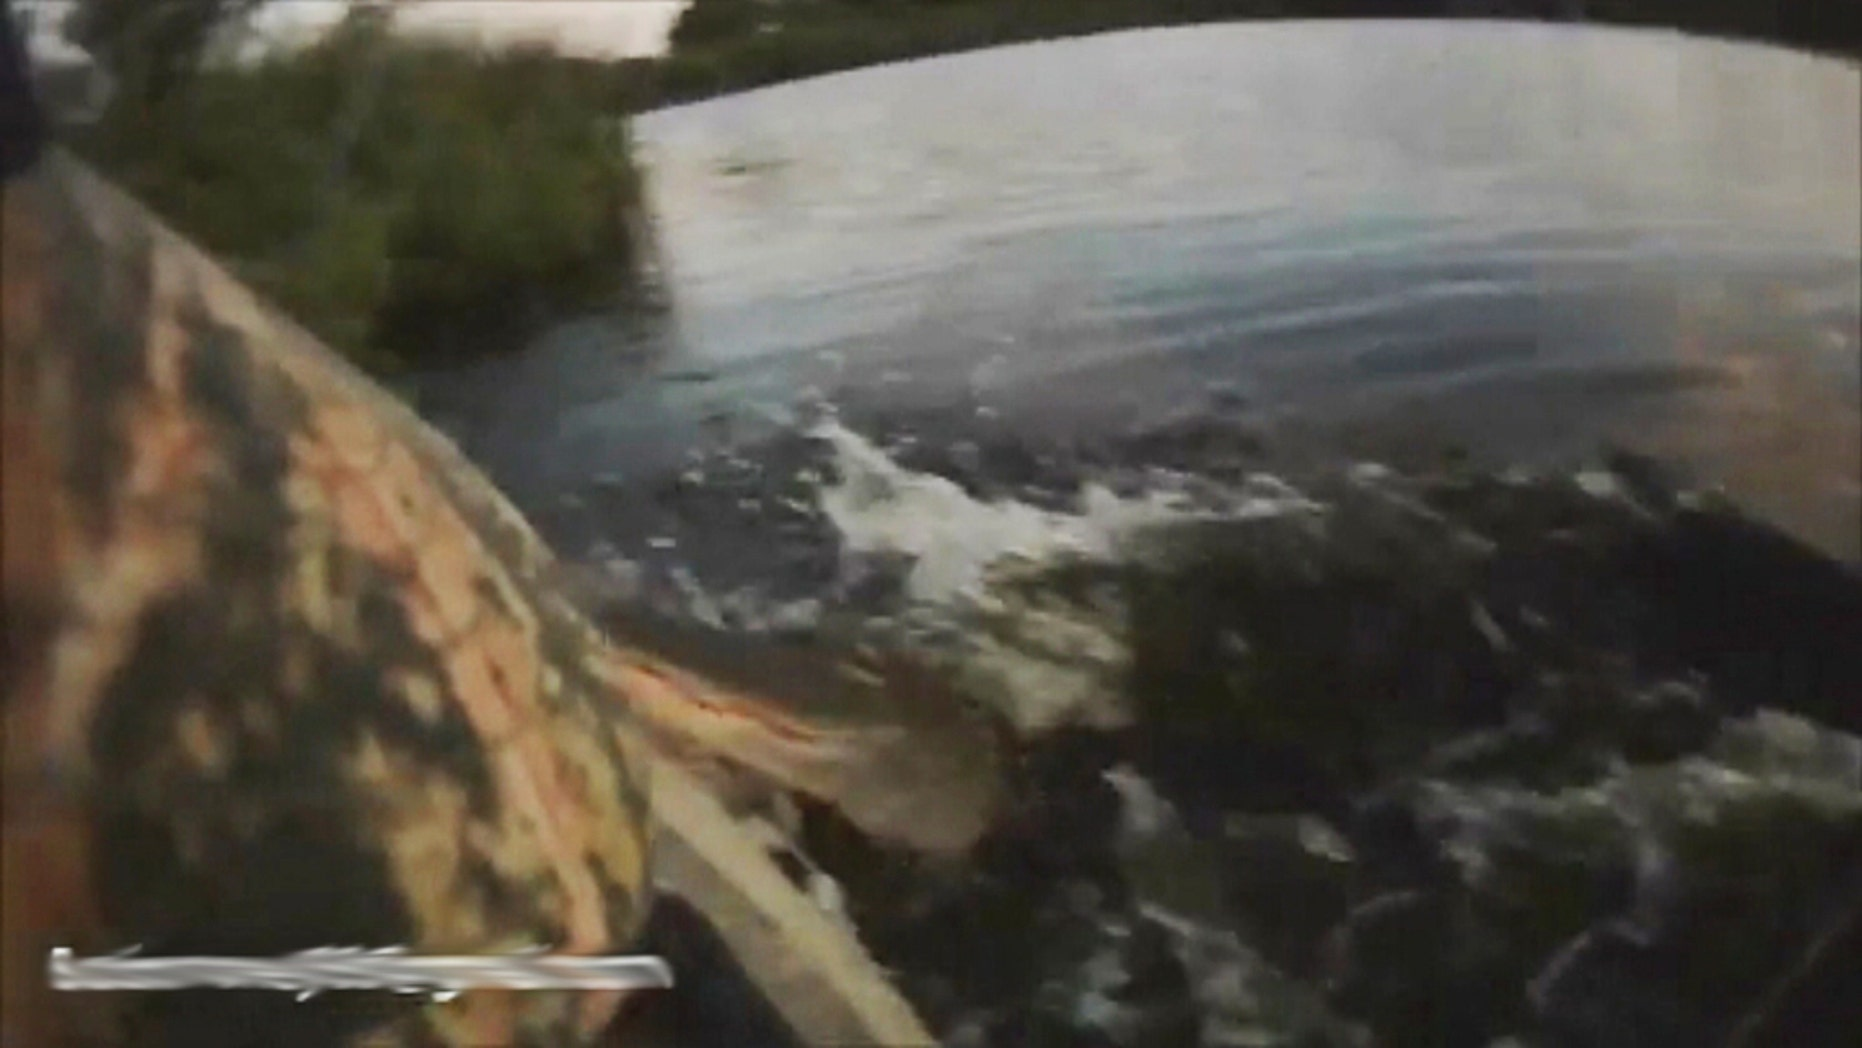 A Florida kayaker had the fright of his life when his fishing trip was interrupted by an alligator that leapt into his boat.